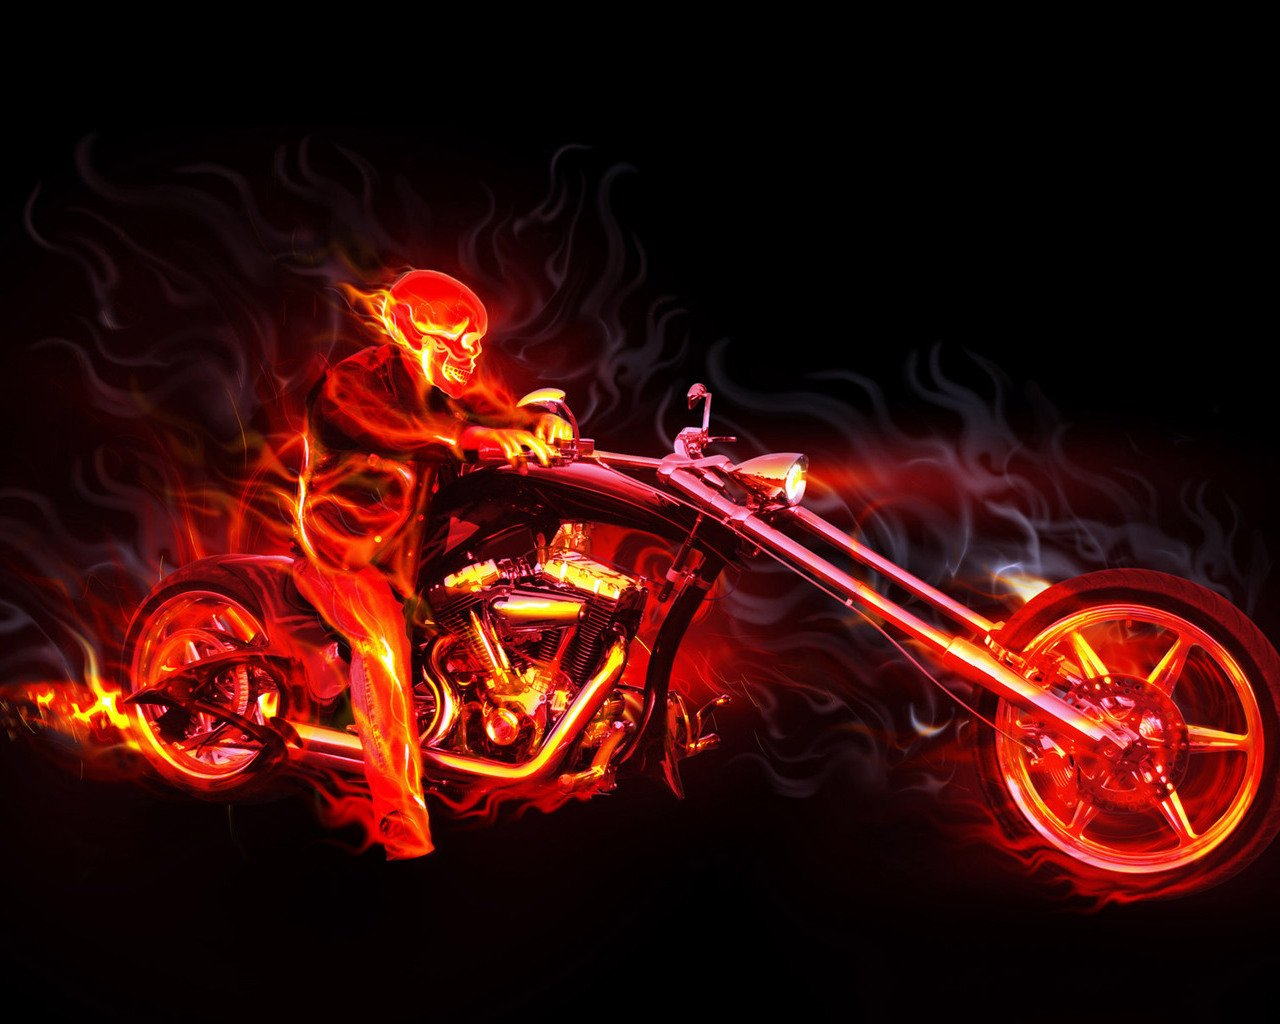 Download wallpaper Ghost Rider Wallpaper Download 1280x1024